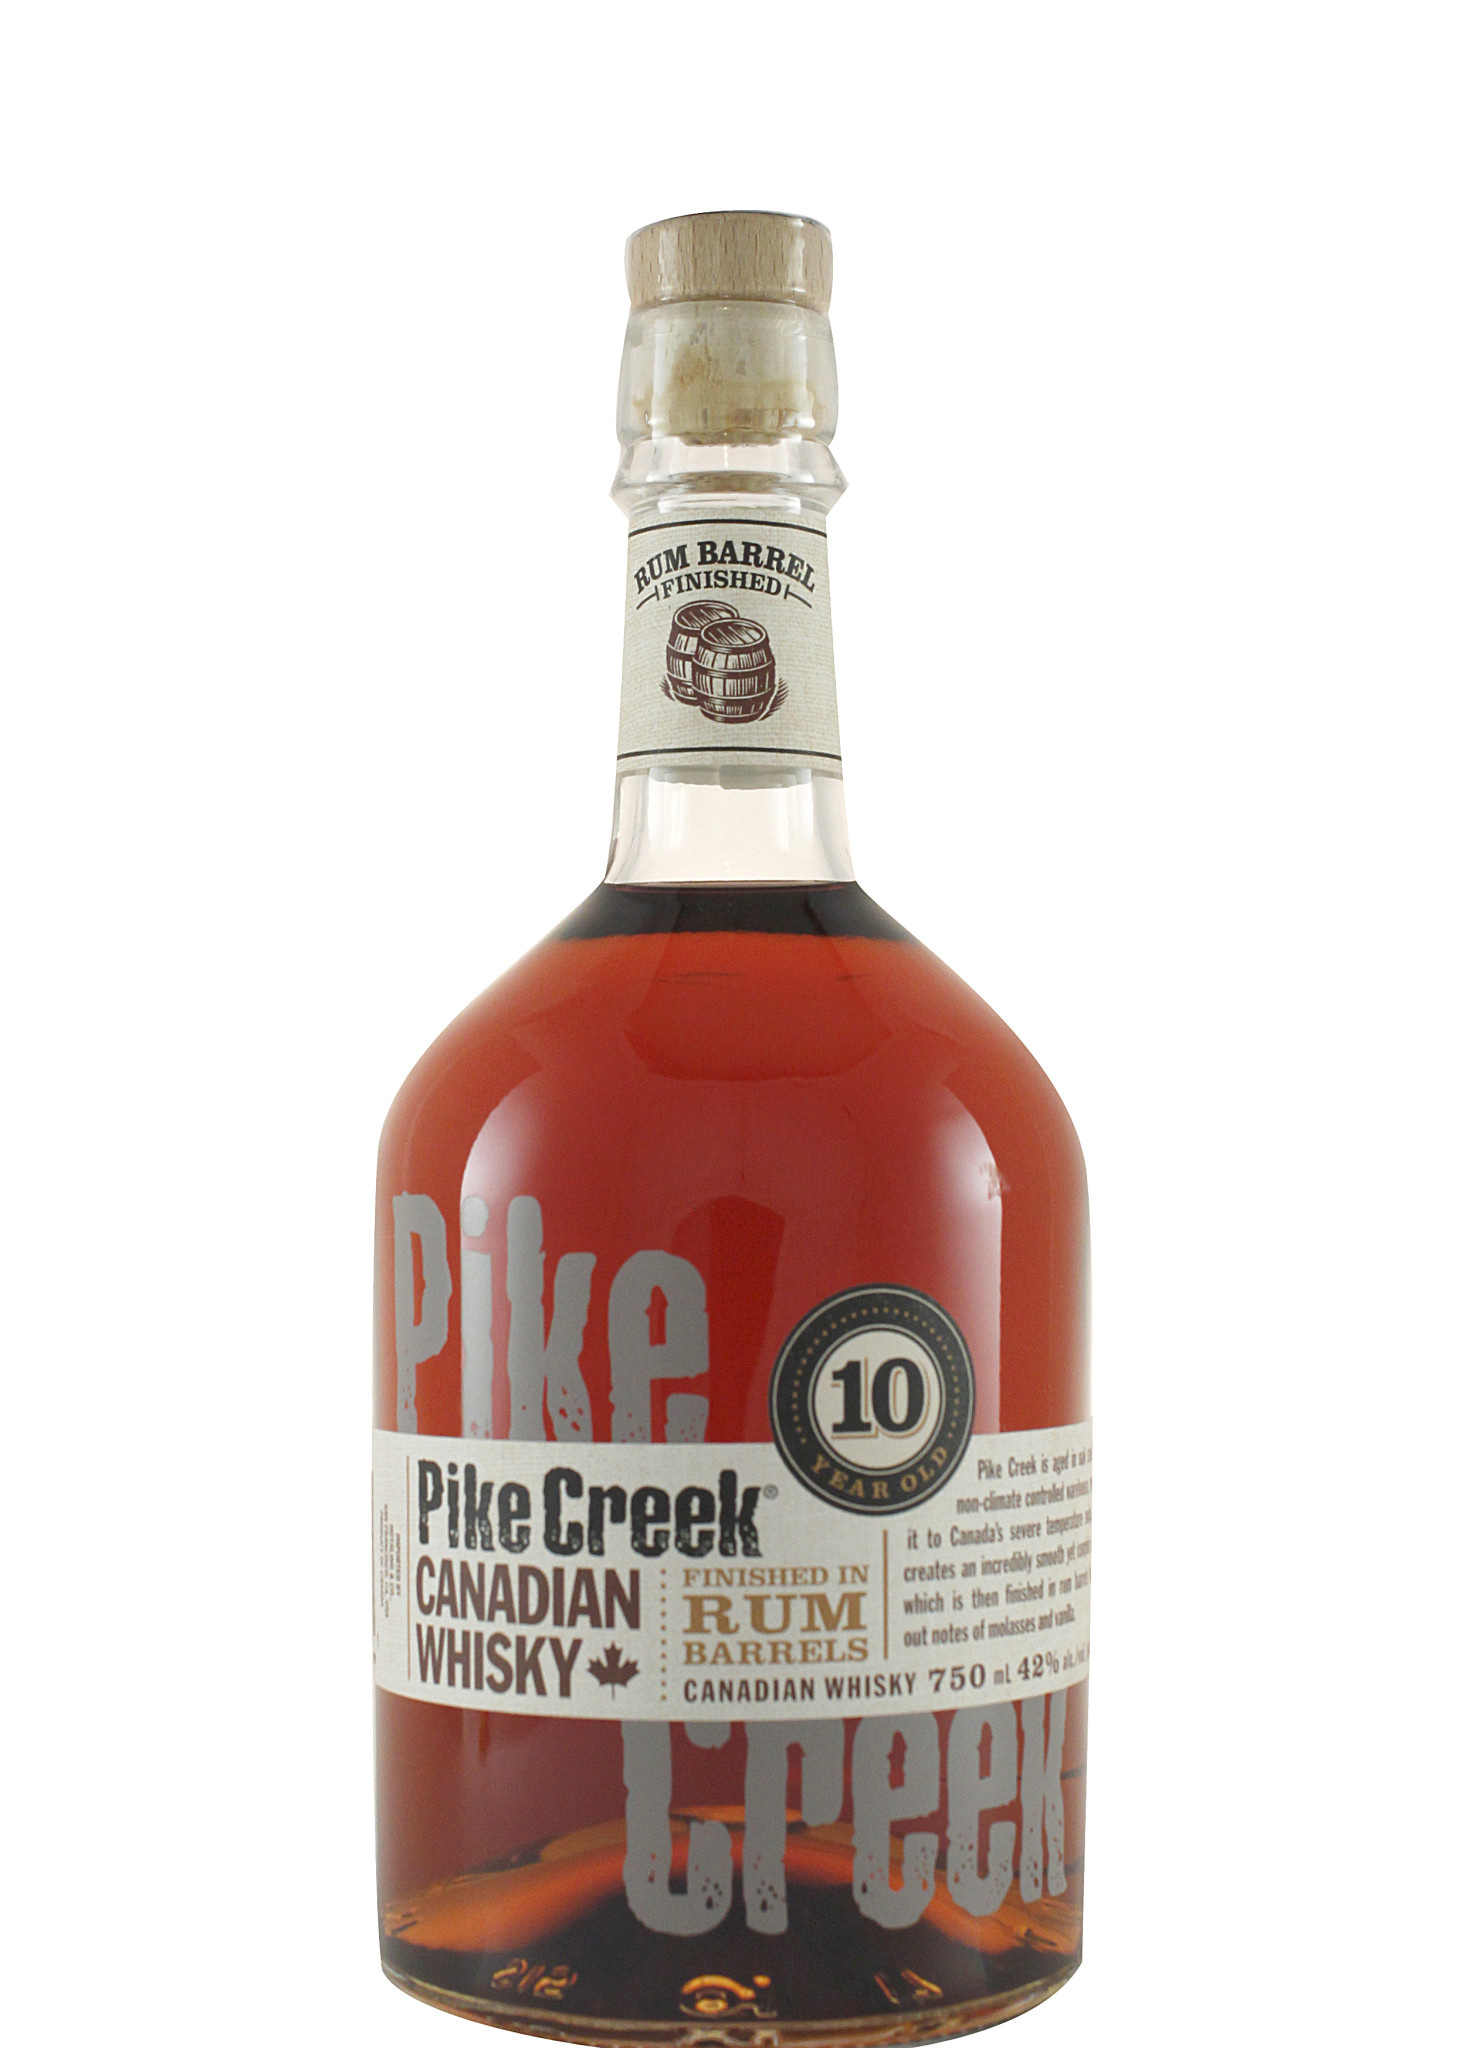 Pike Creek Canadian Whisky 10 Year Old Rum Barrel Finished